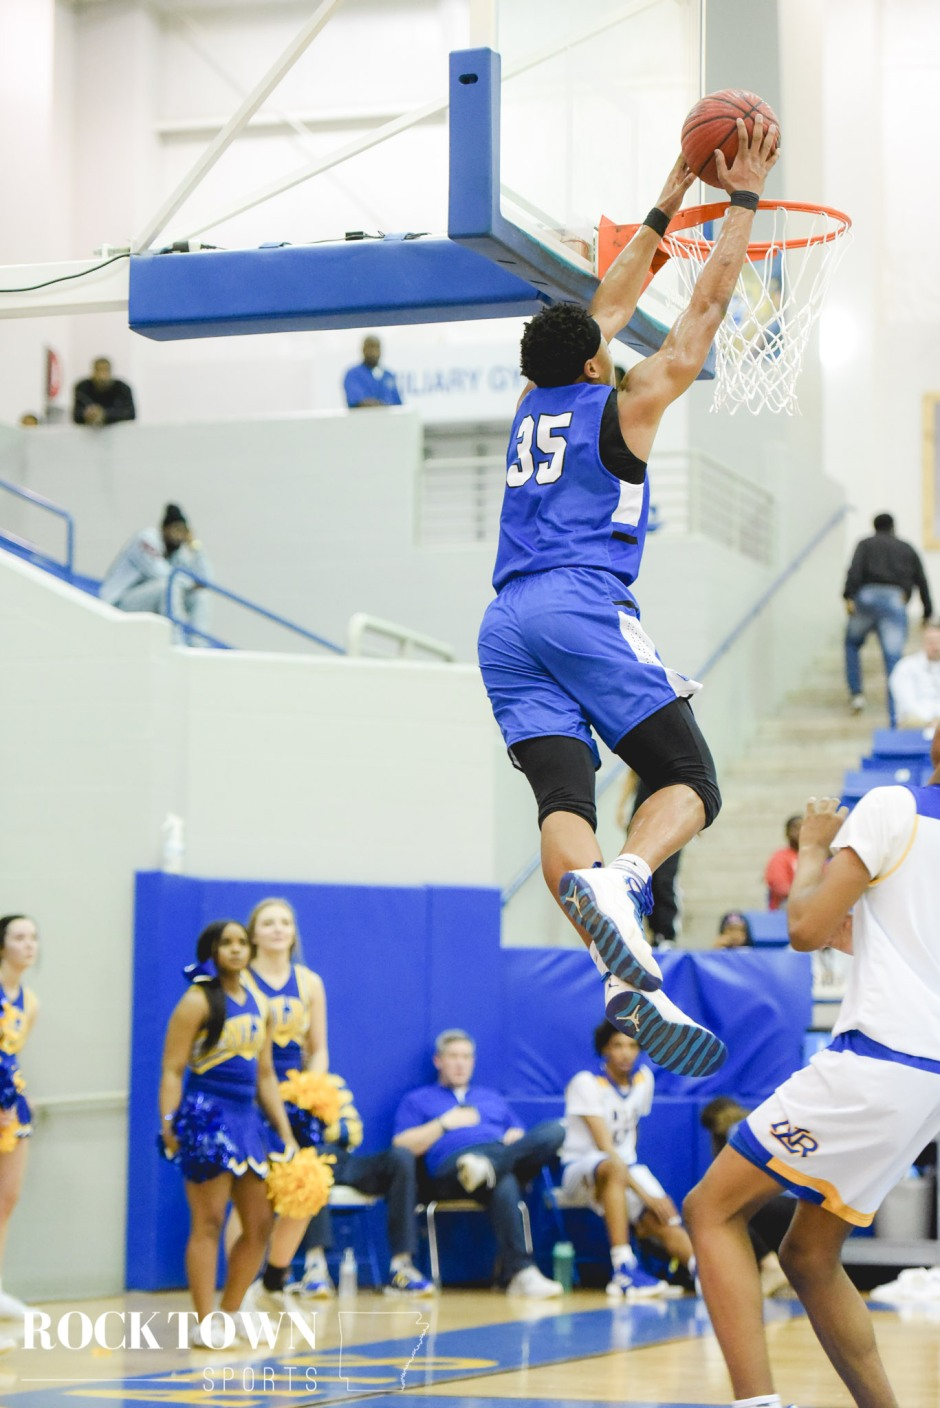 Conway_NLR_bball19(i)-75